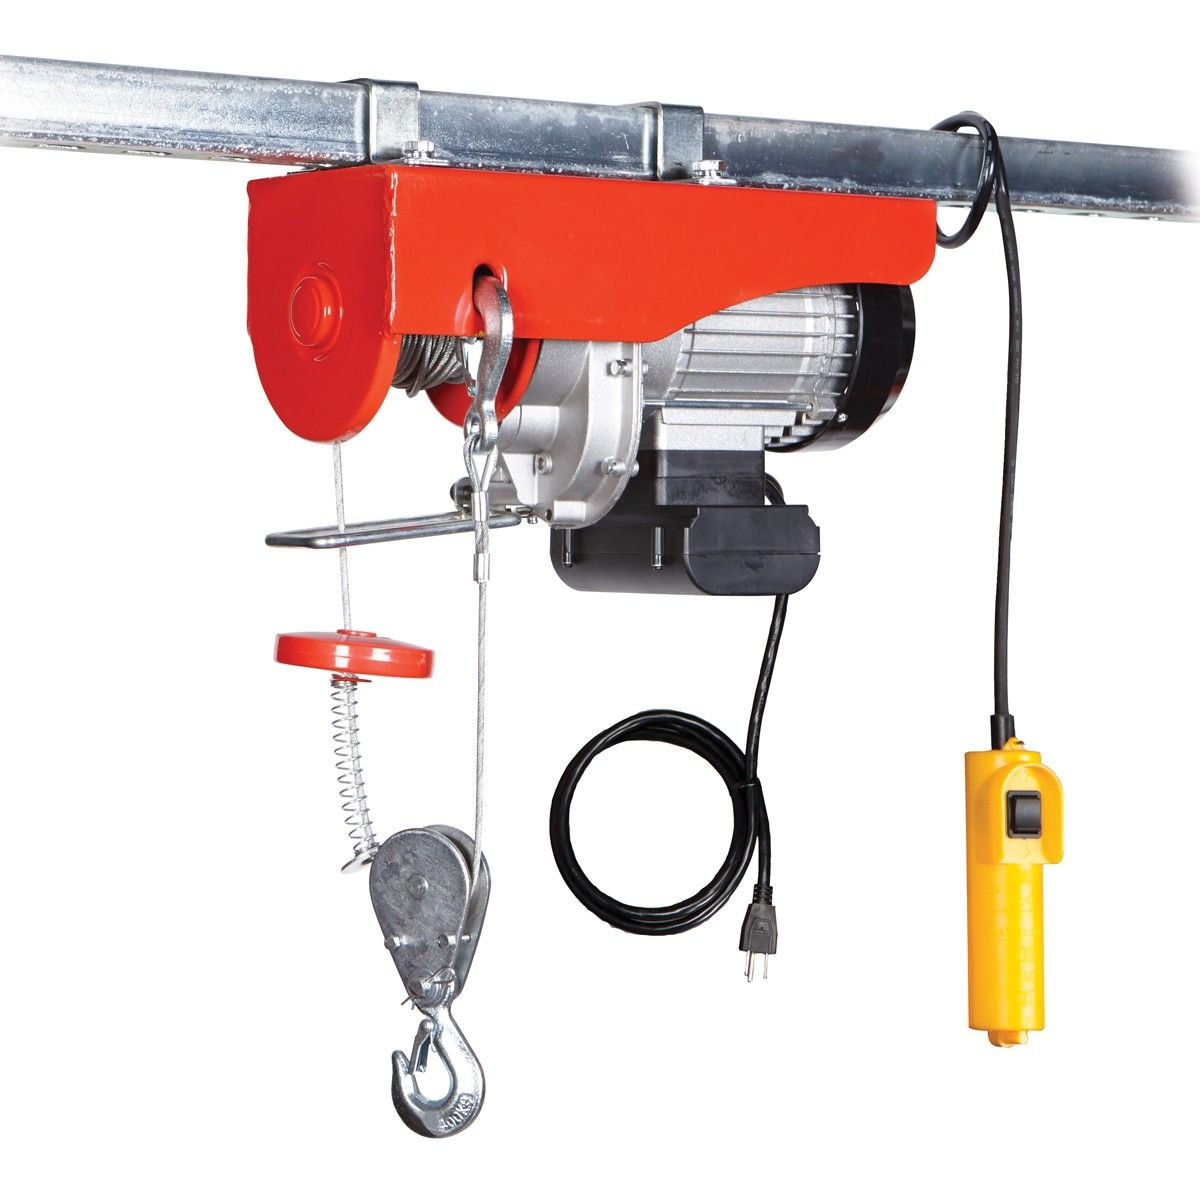 880 lb. Electric Hoist with Remote Control Garage lift